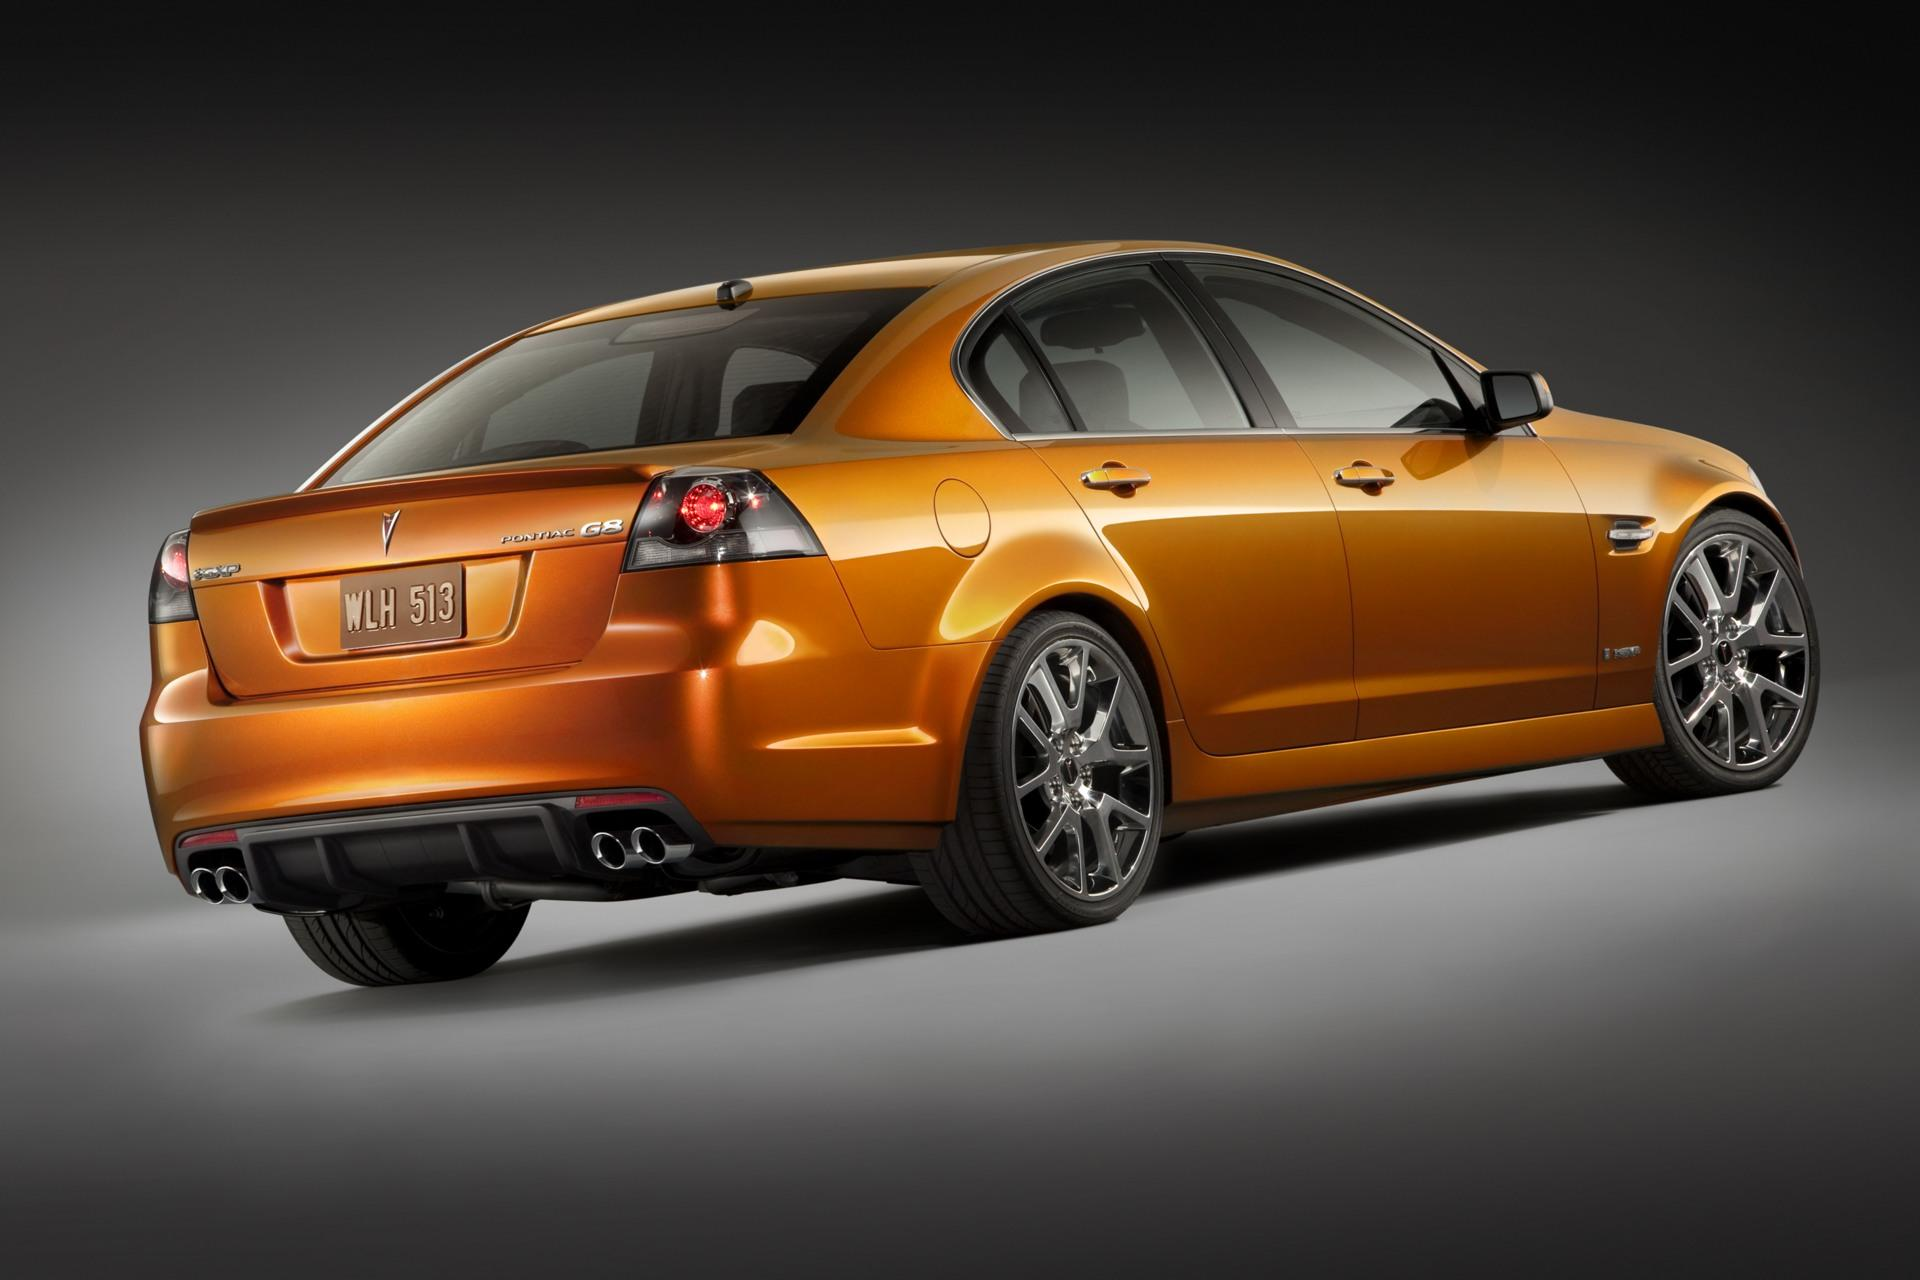 2009 Pontiac G8 Gxp Technical Specifications And Data